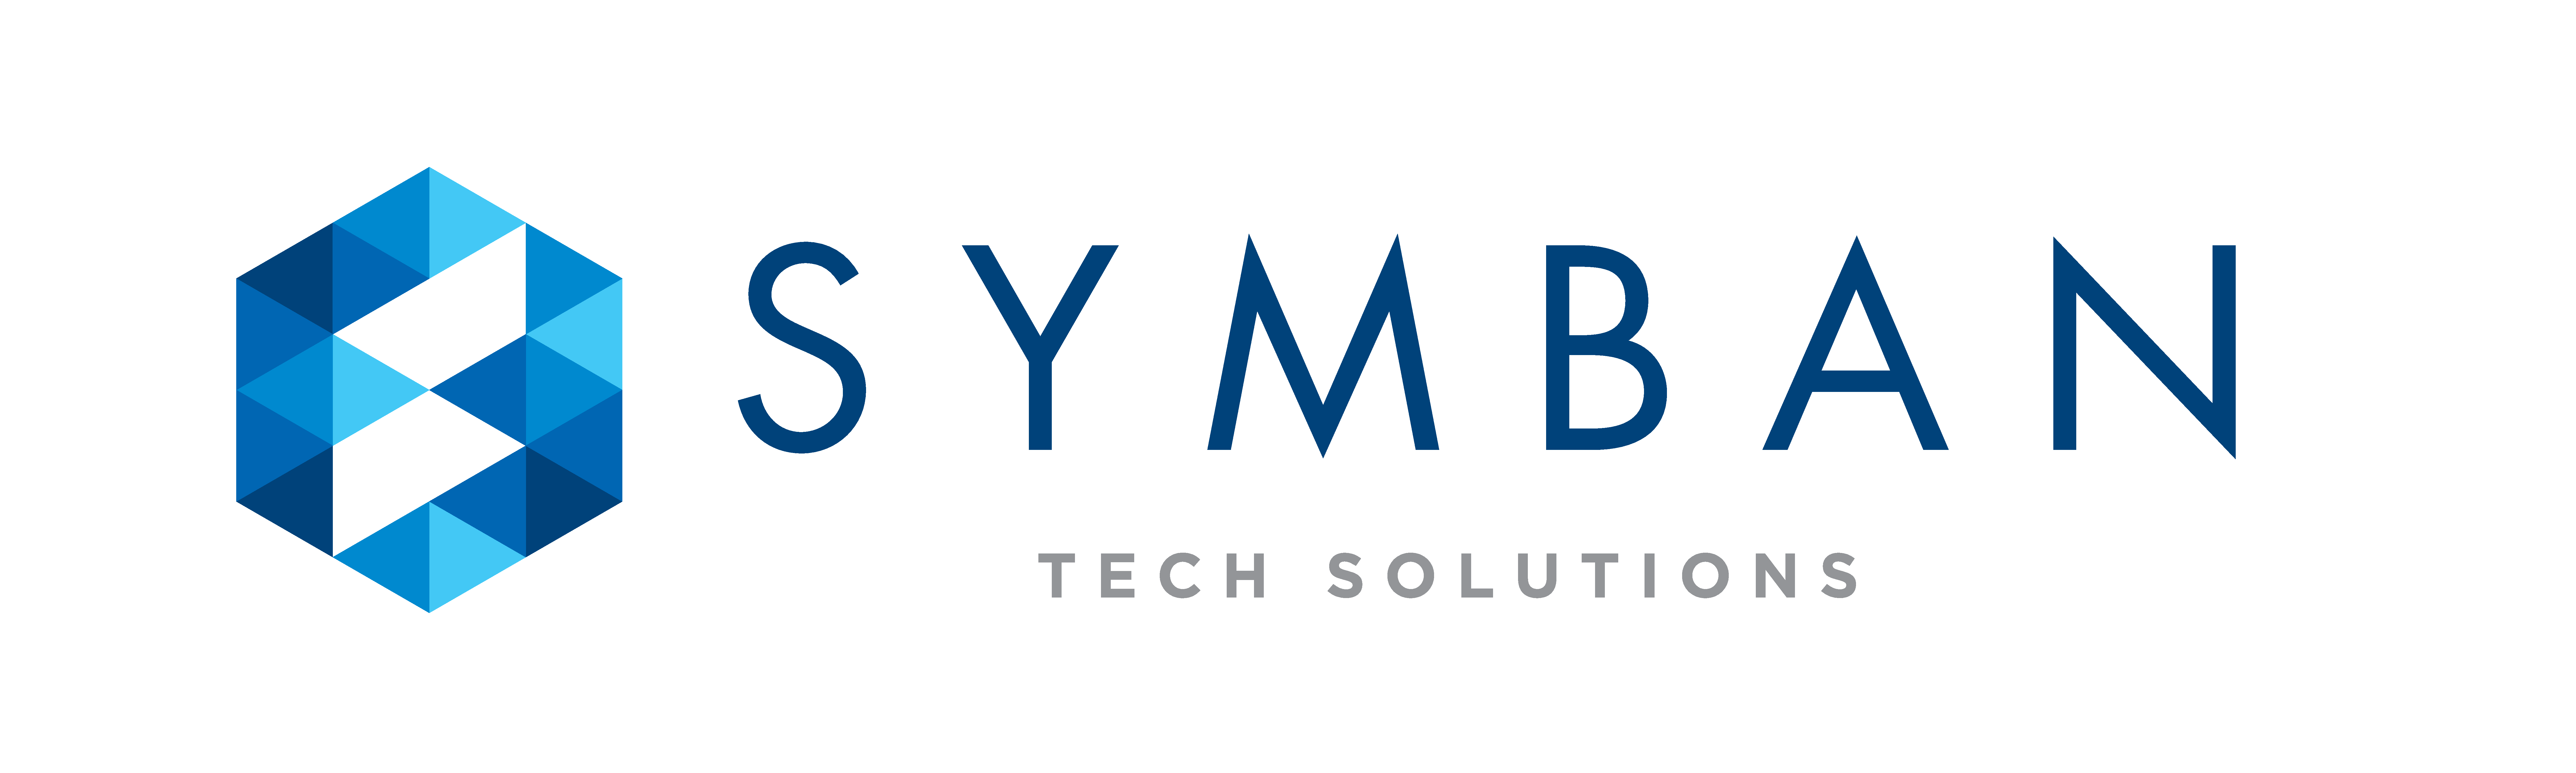 Symban Services Logo with TECH SOLUTIONS tagline on White Background